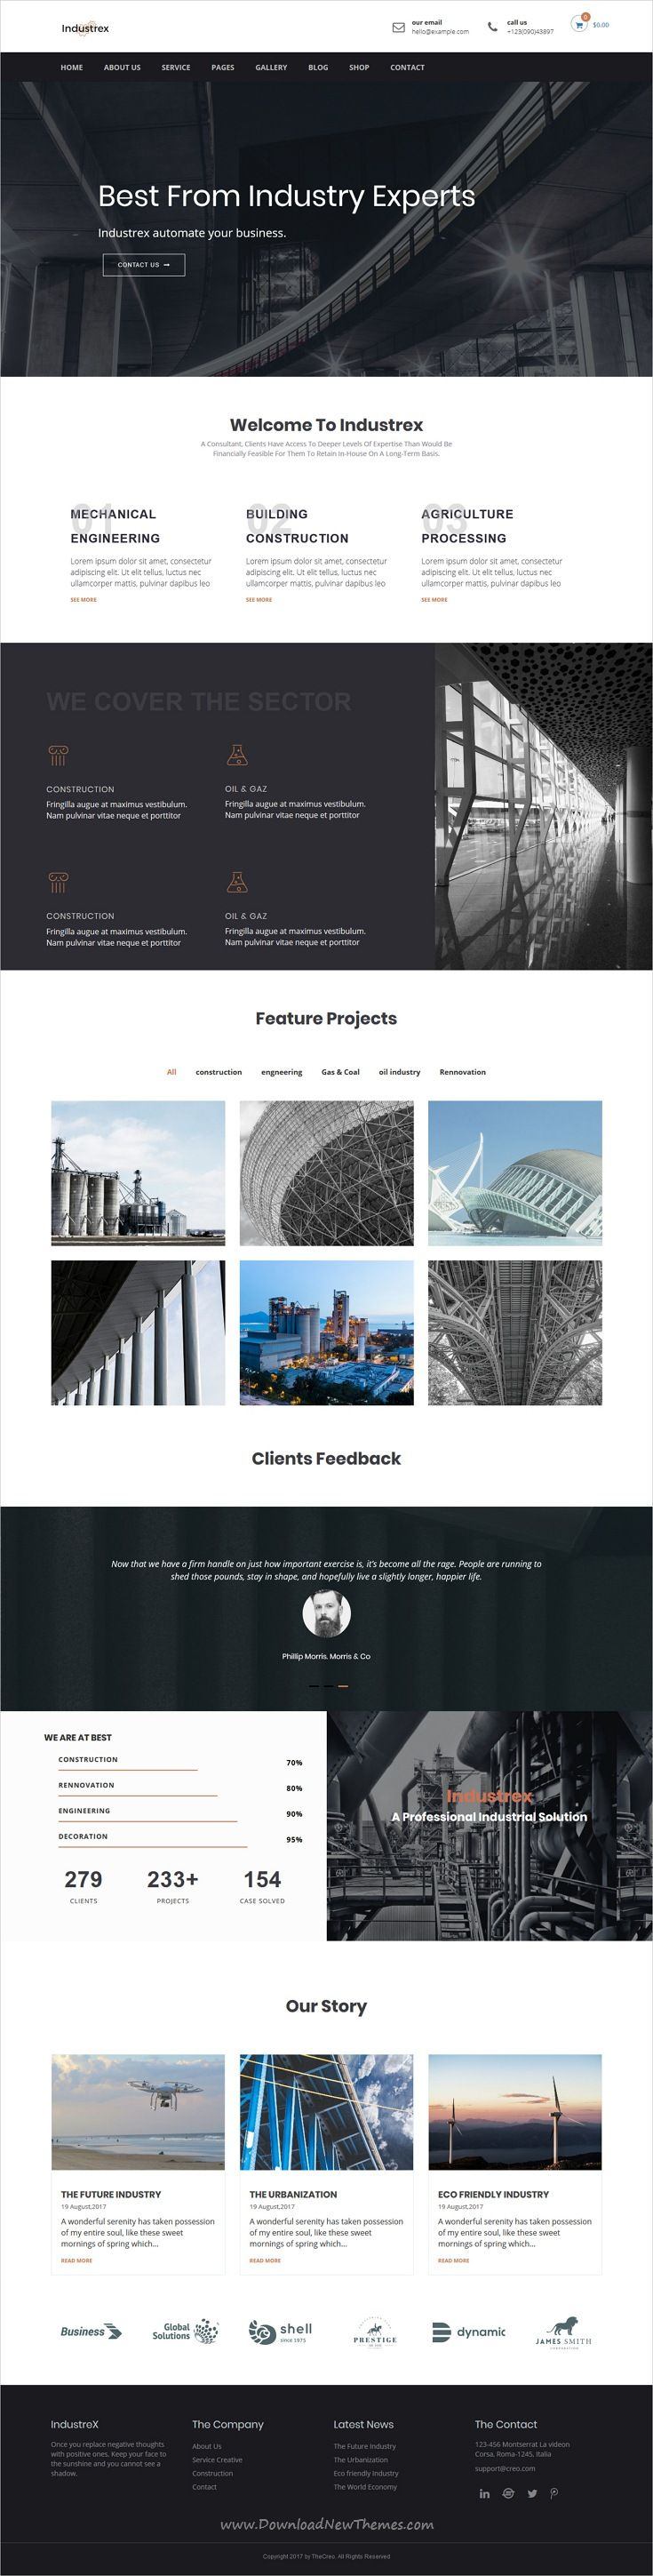 Industrex is clean and modern design 2in1 responsive #WordPress theme for #industry and #construction company website download now..